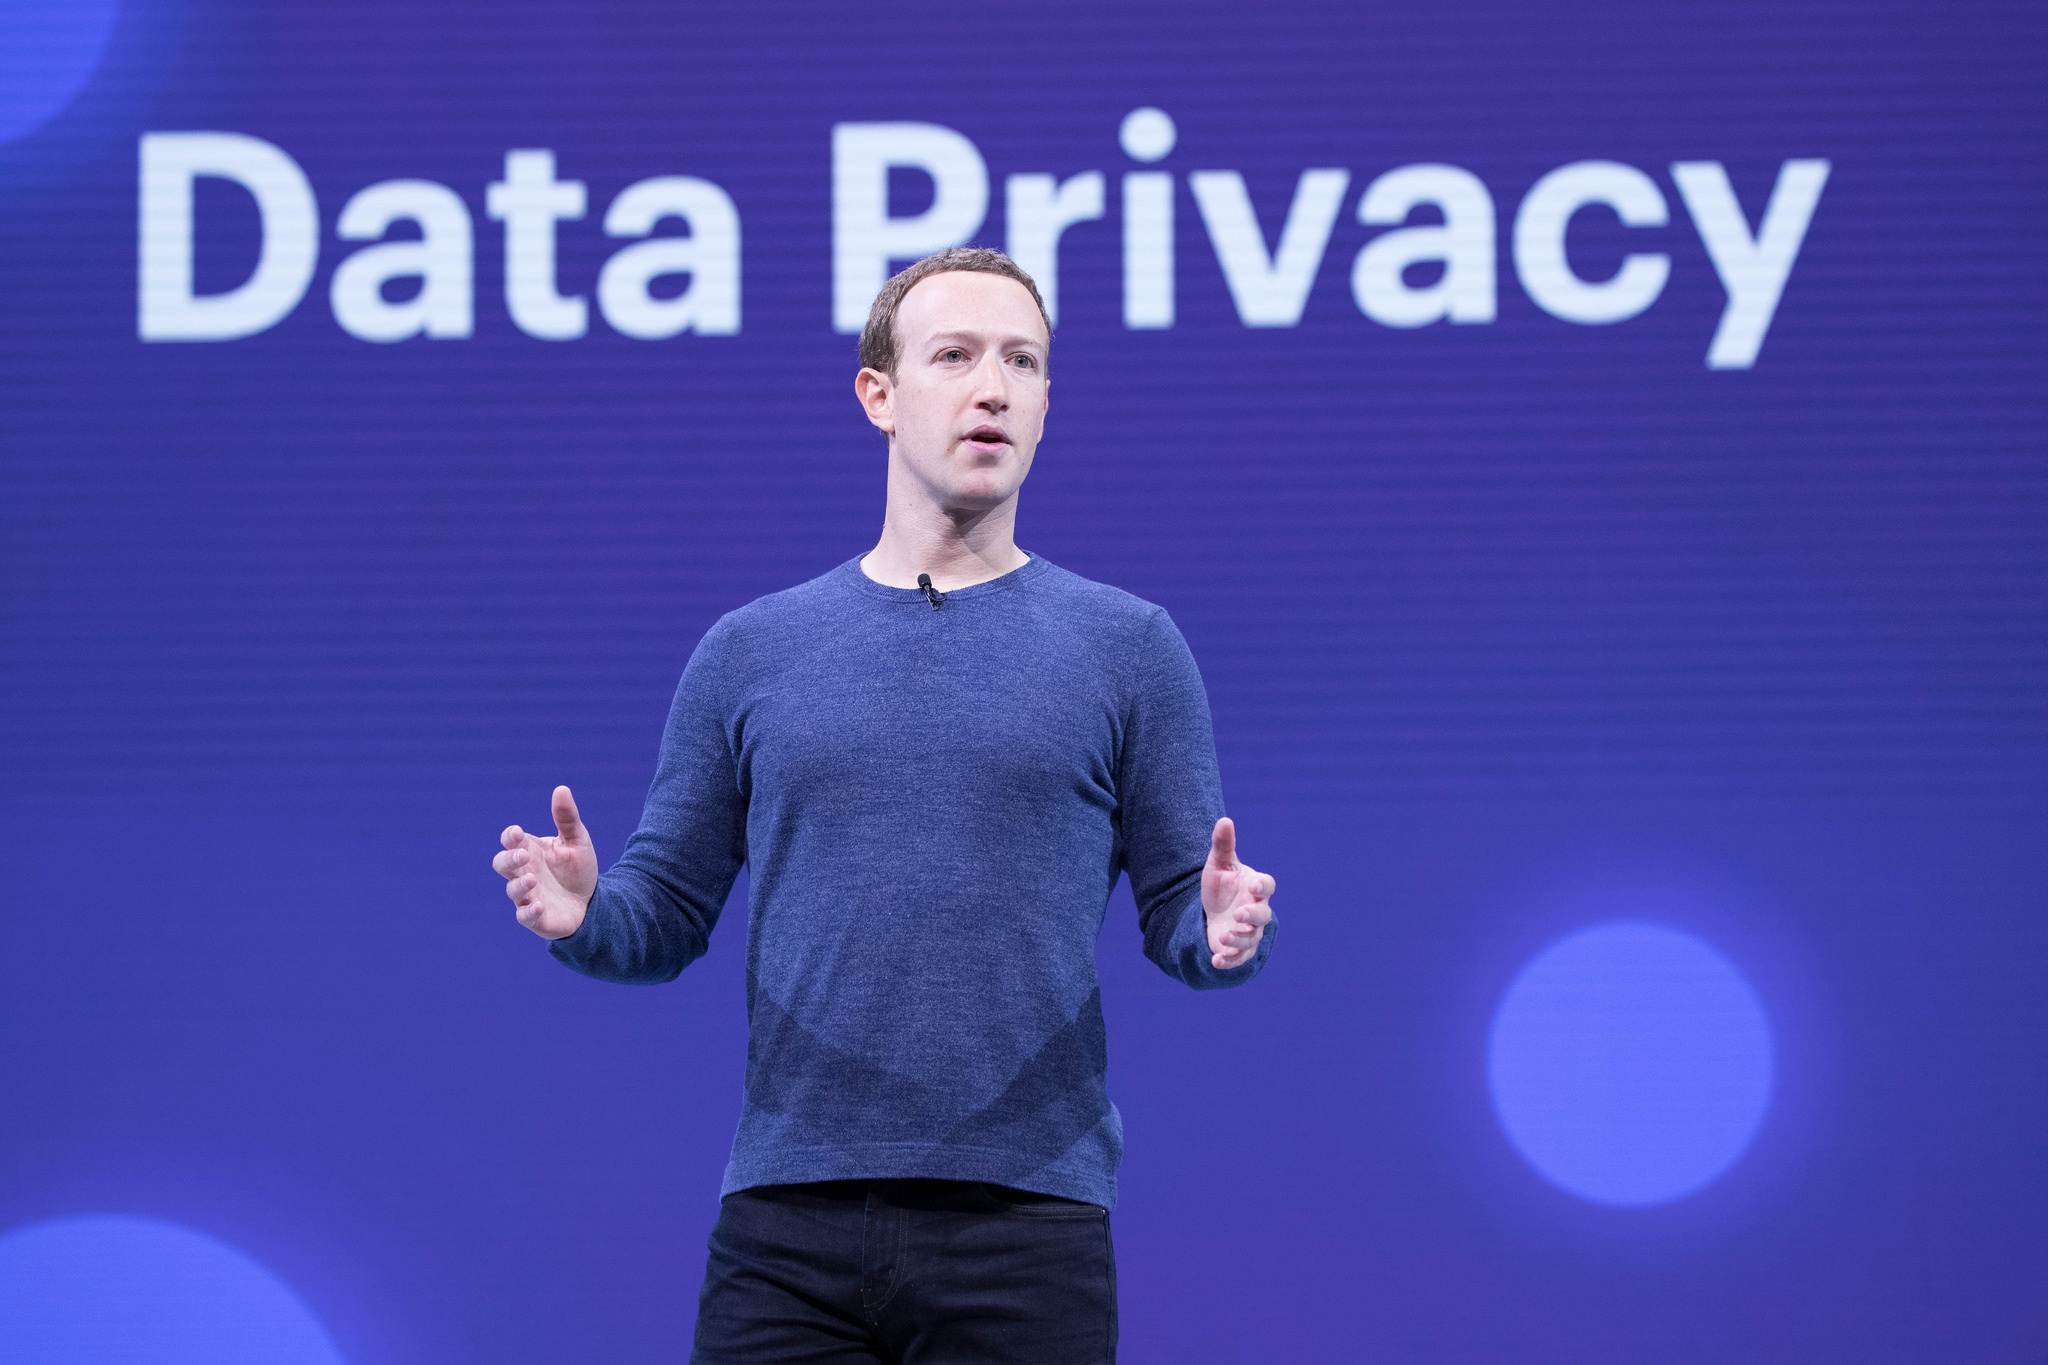 Facebook CEO Mark Zuckerberg speaks at the F8 event in 2018. Credit: quintanomedia/Flickr, CC BY 2.0